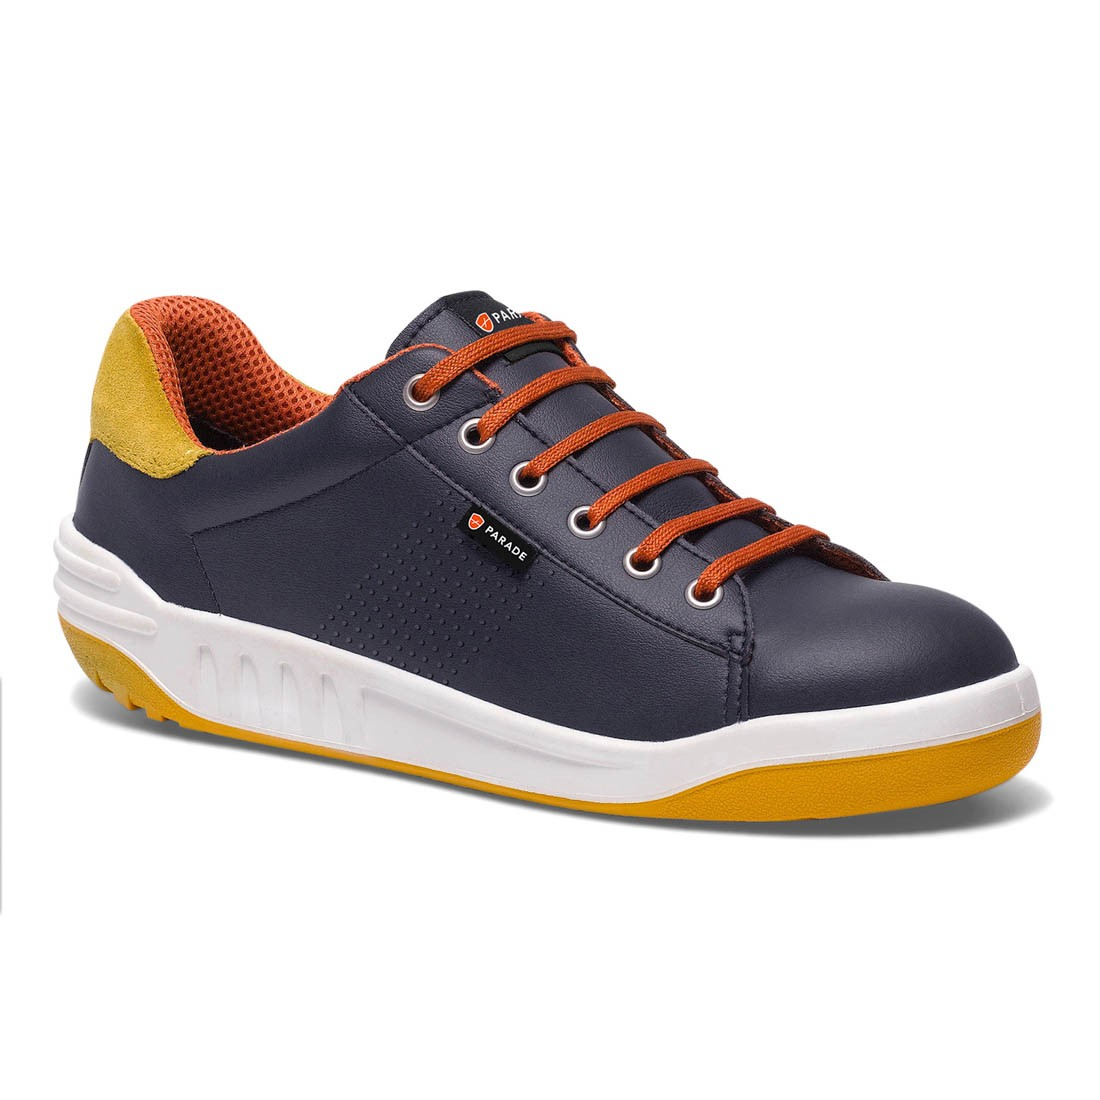 Parade Jamma Carnival Blue Lightweight VPS Unisex Safety Trainer Shoes